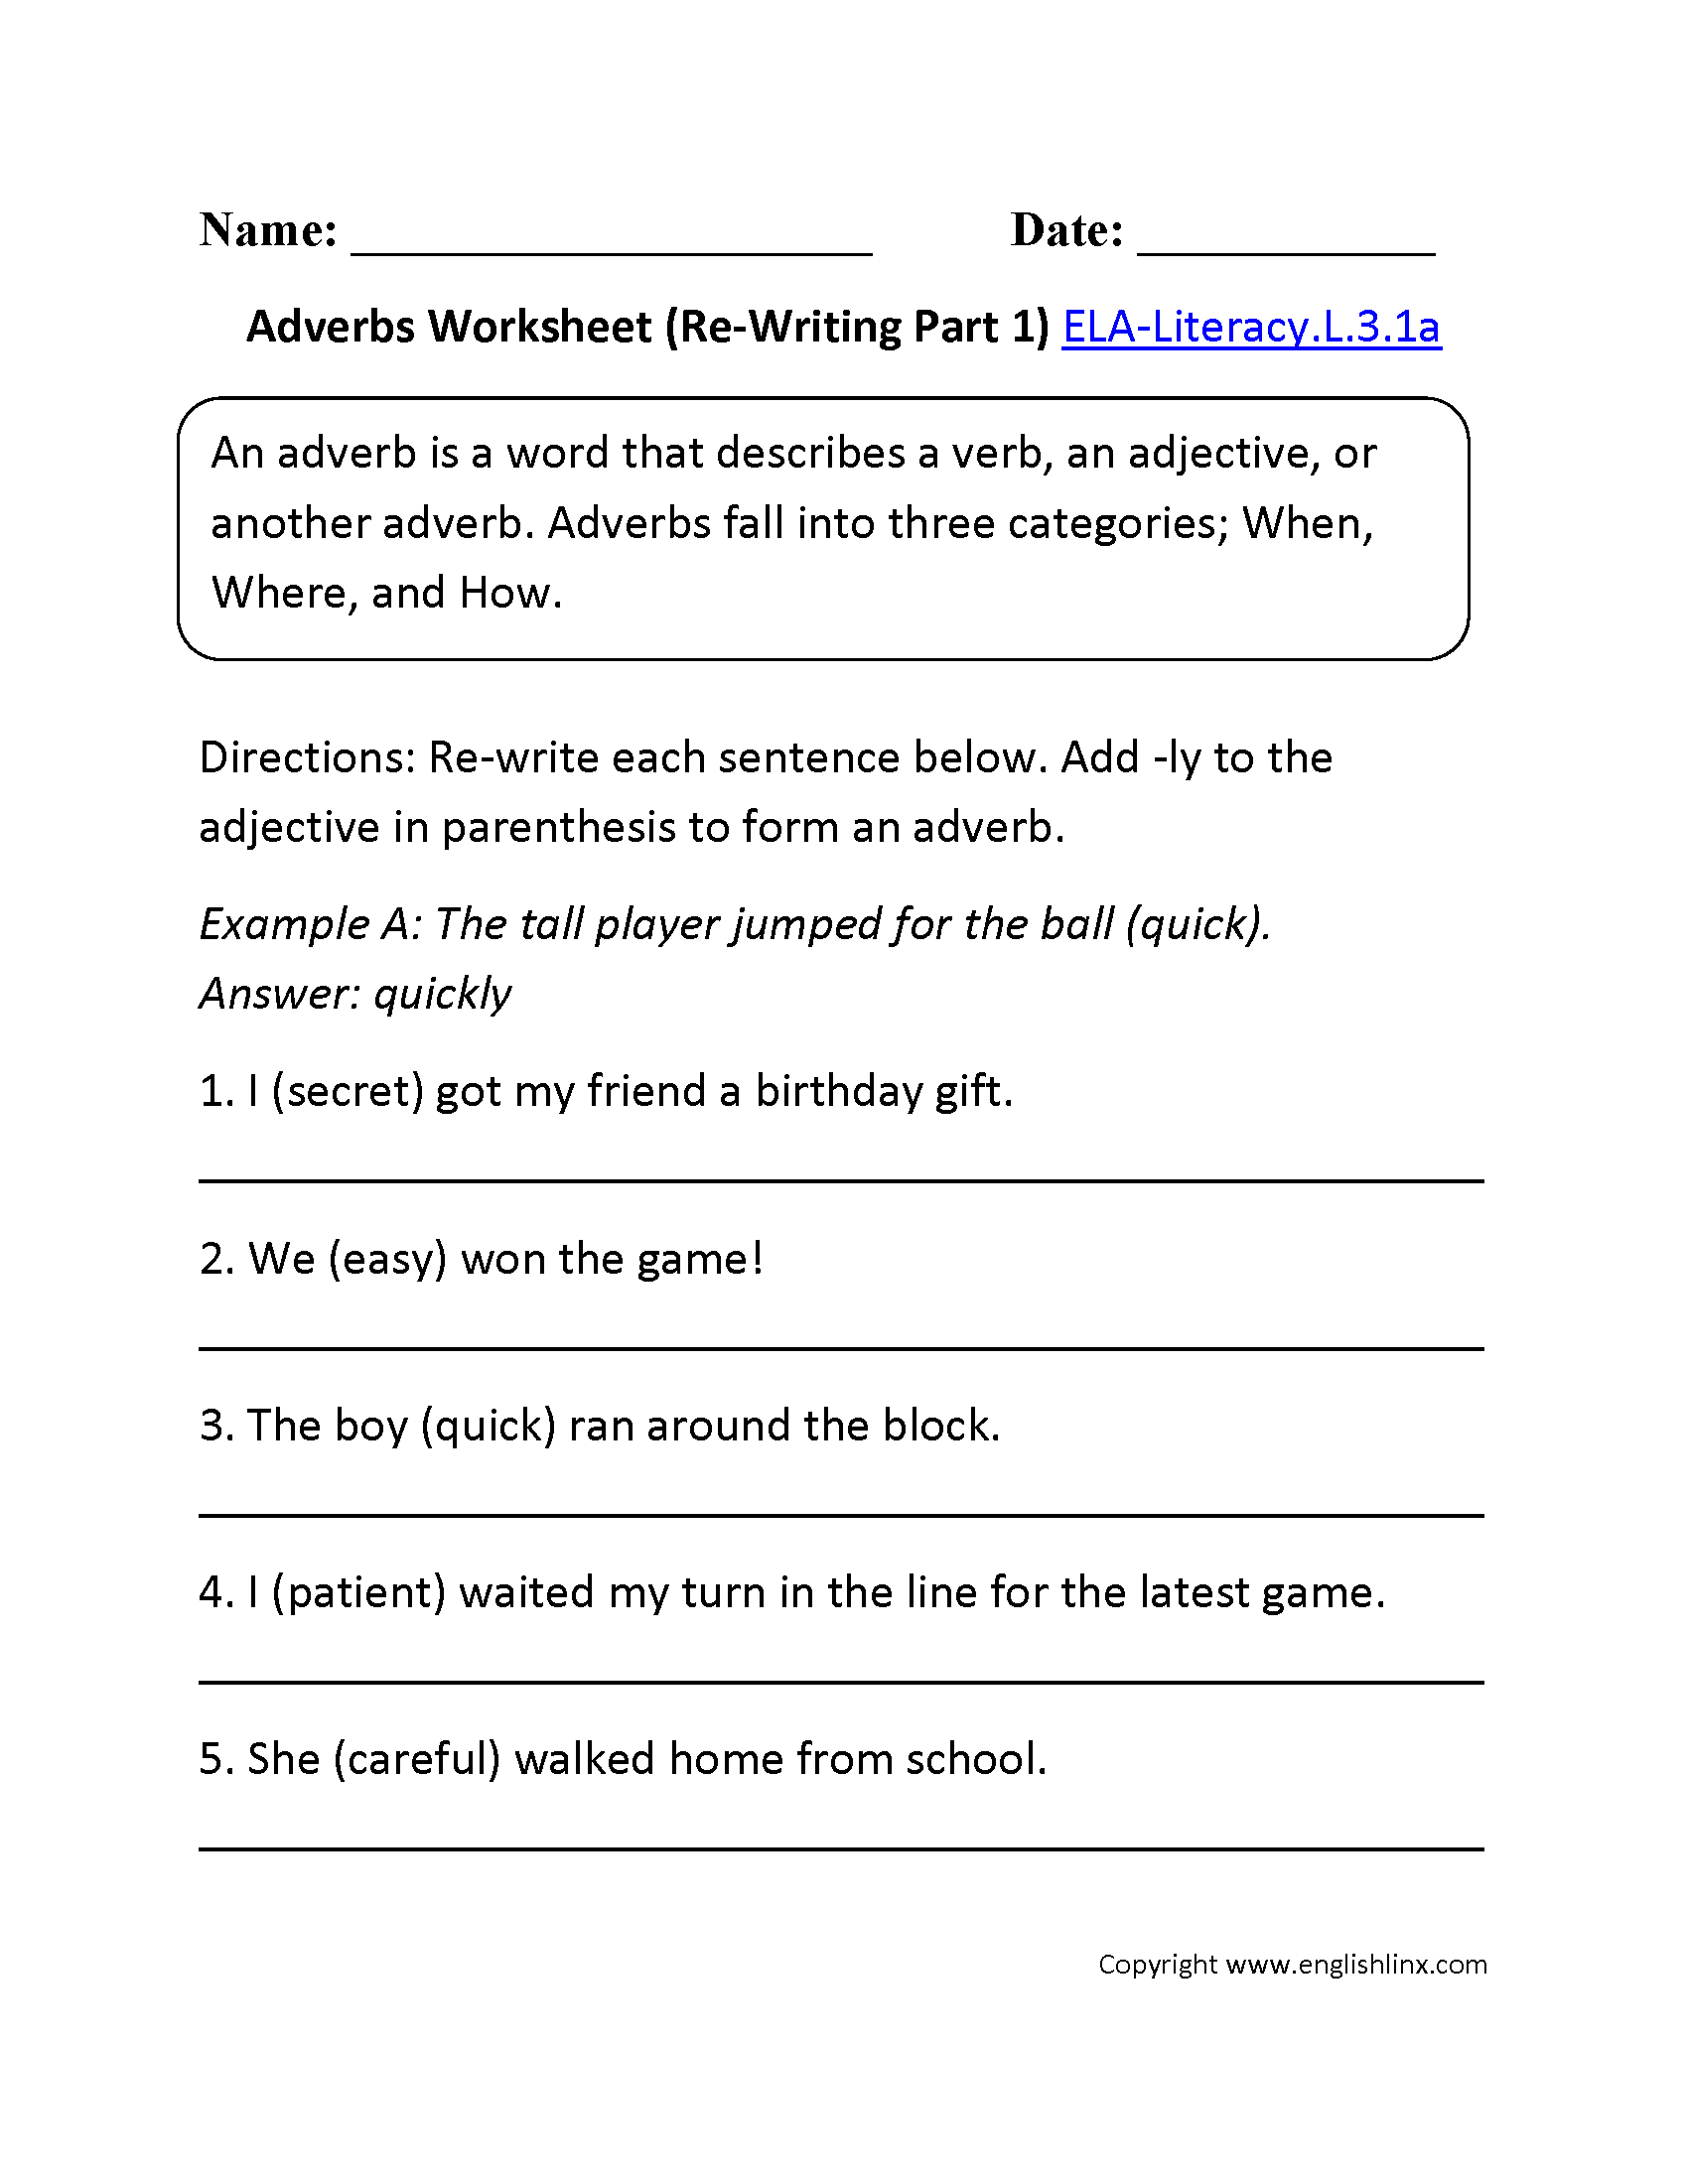 Worksheets 8th Grade Writing Worksheets adverbs worksheet 2 l 3 1 pinterest english worksheets that are aligned to the grade common core standards for language